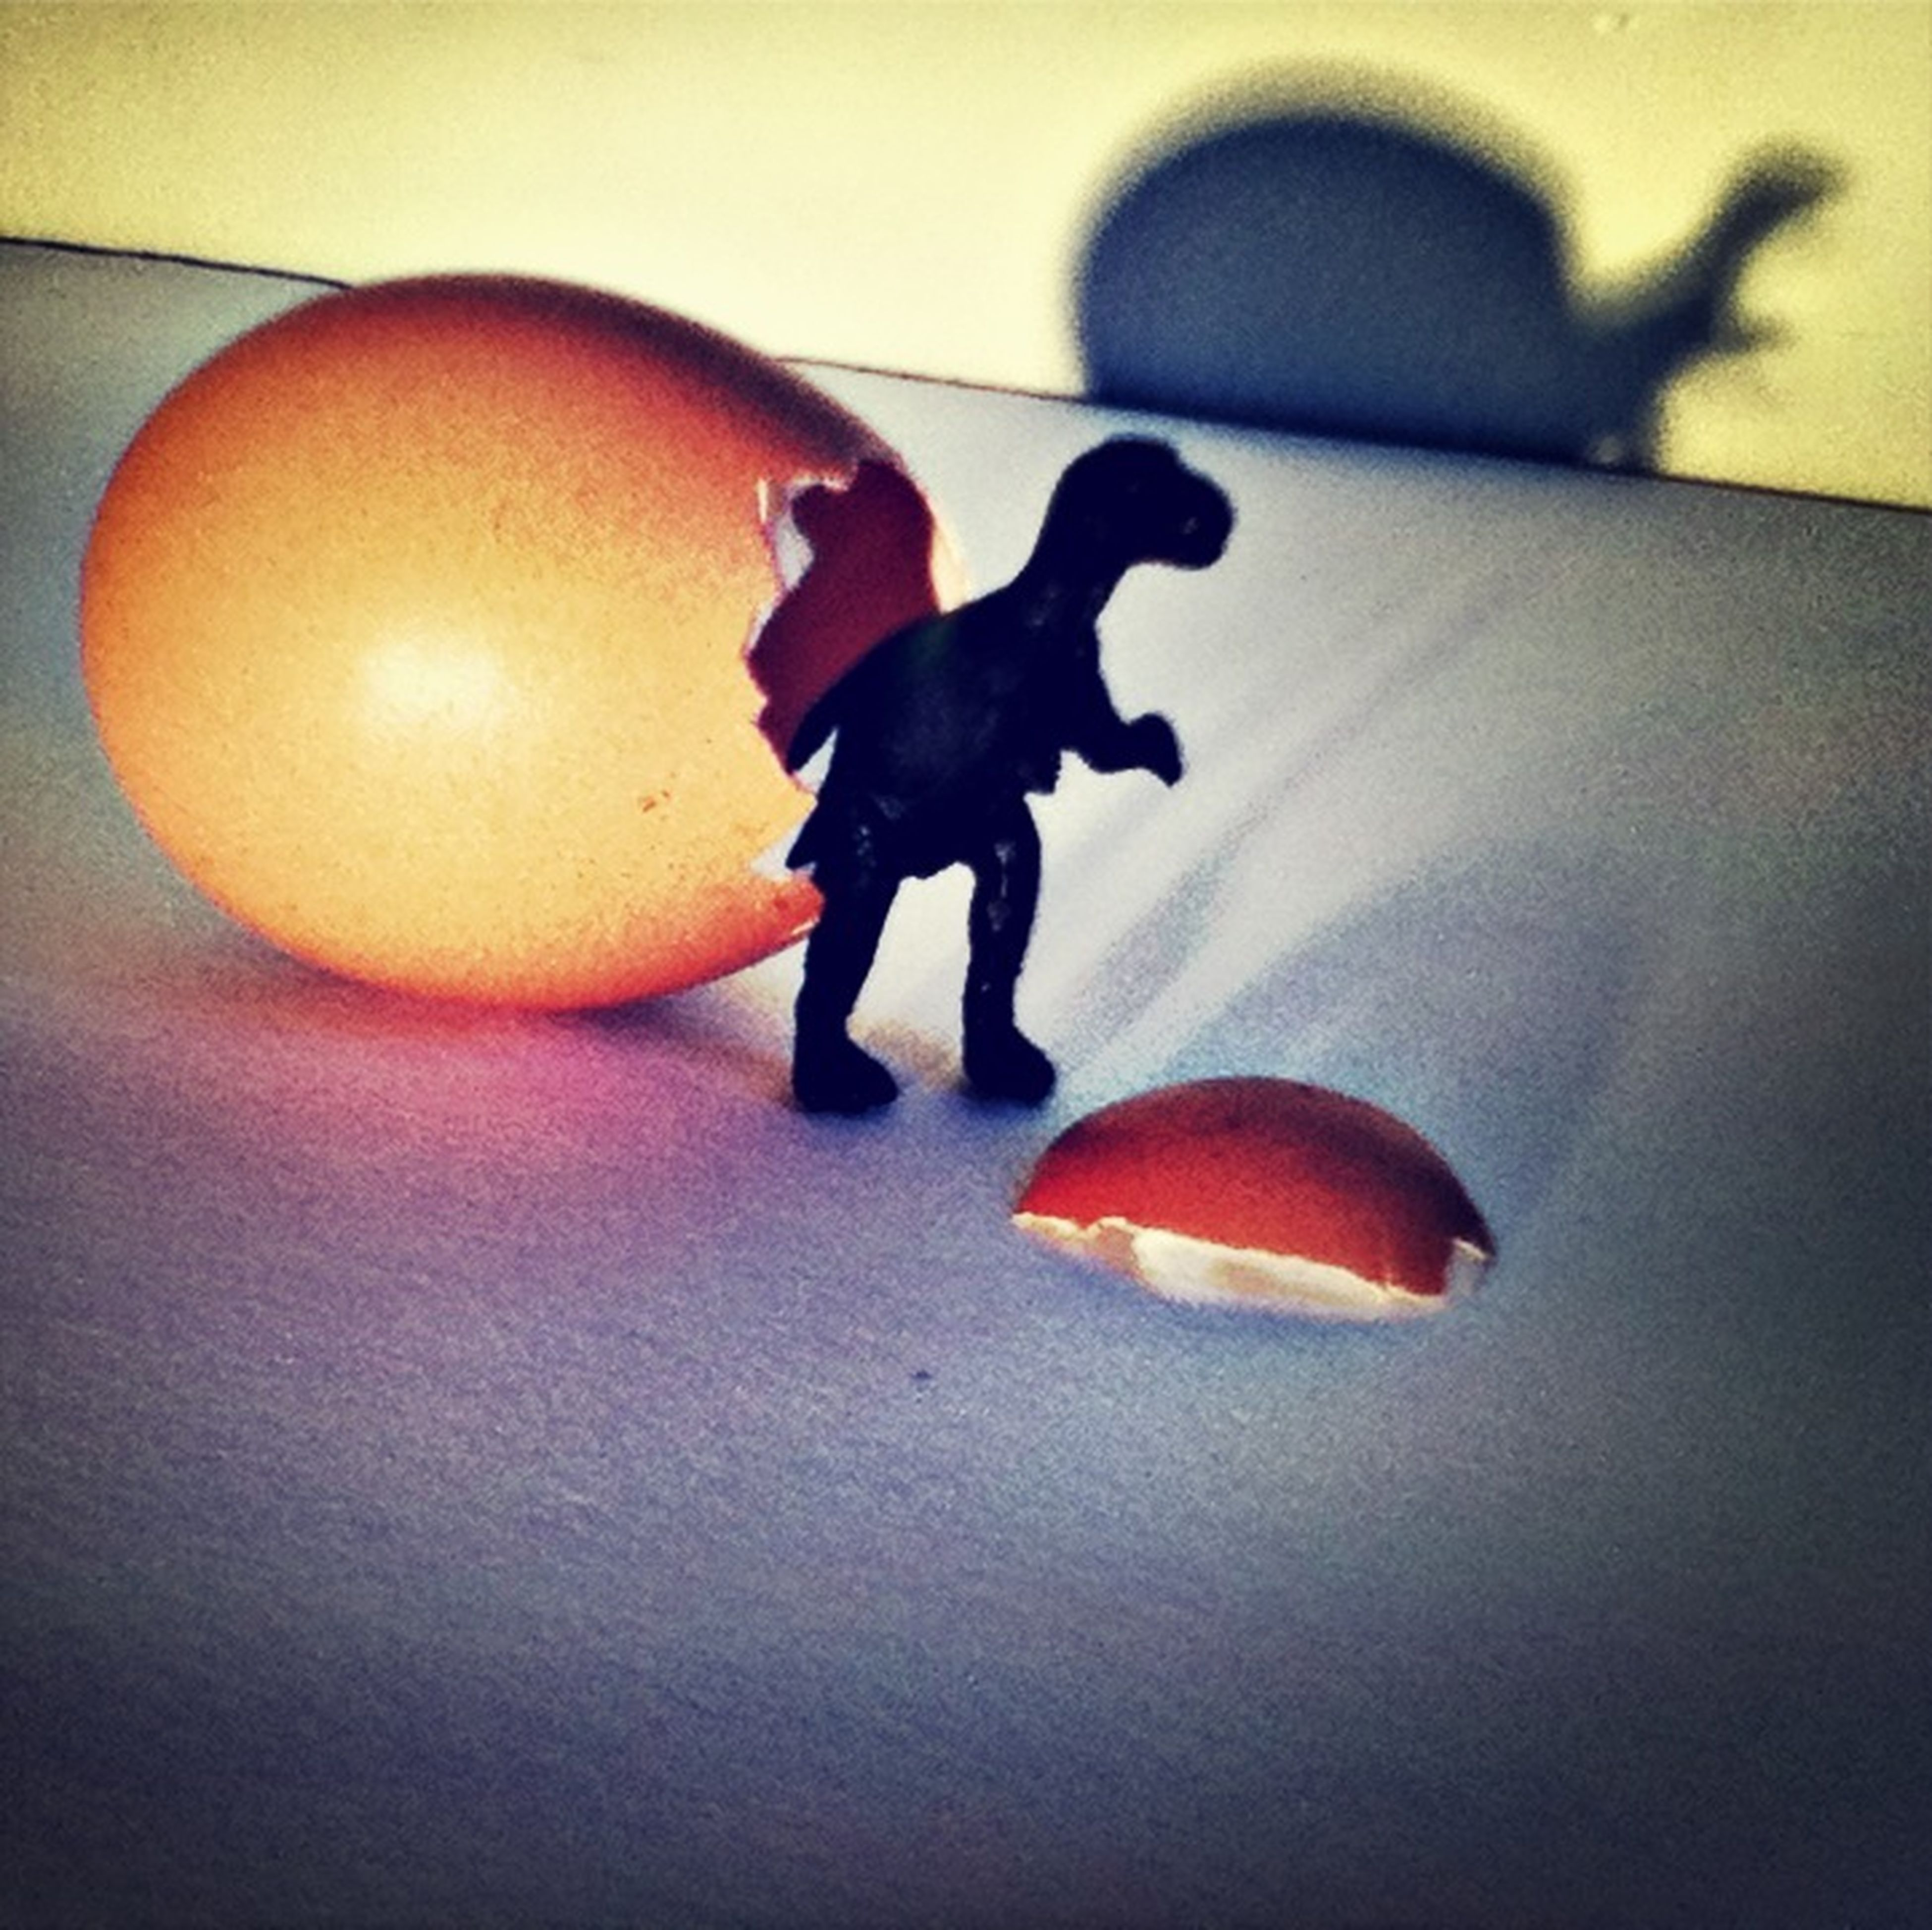 indoors, animal representation, toy, full length, high angle view, human representation, art and craft, art, creativity, animal themes, red, flooring, orange color, auto post production filter, shadow, ball, table, sport, mid-air, no people